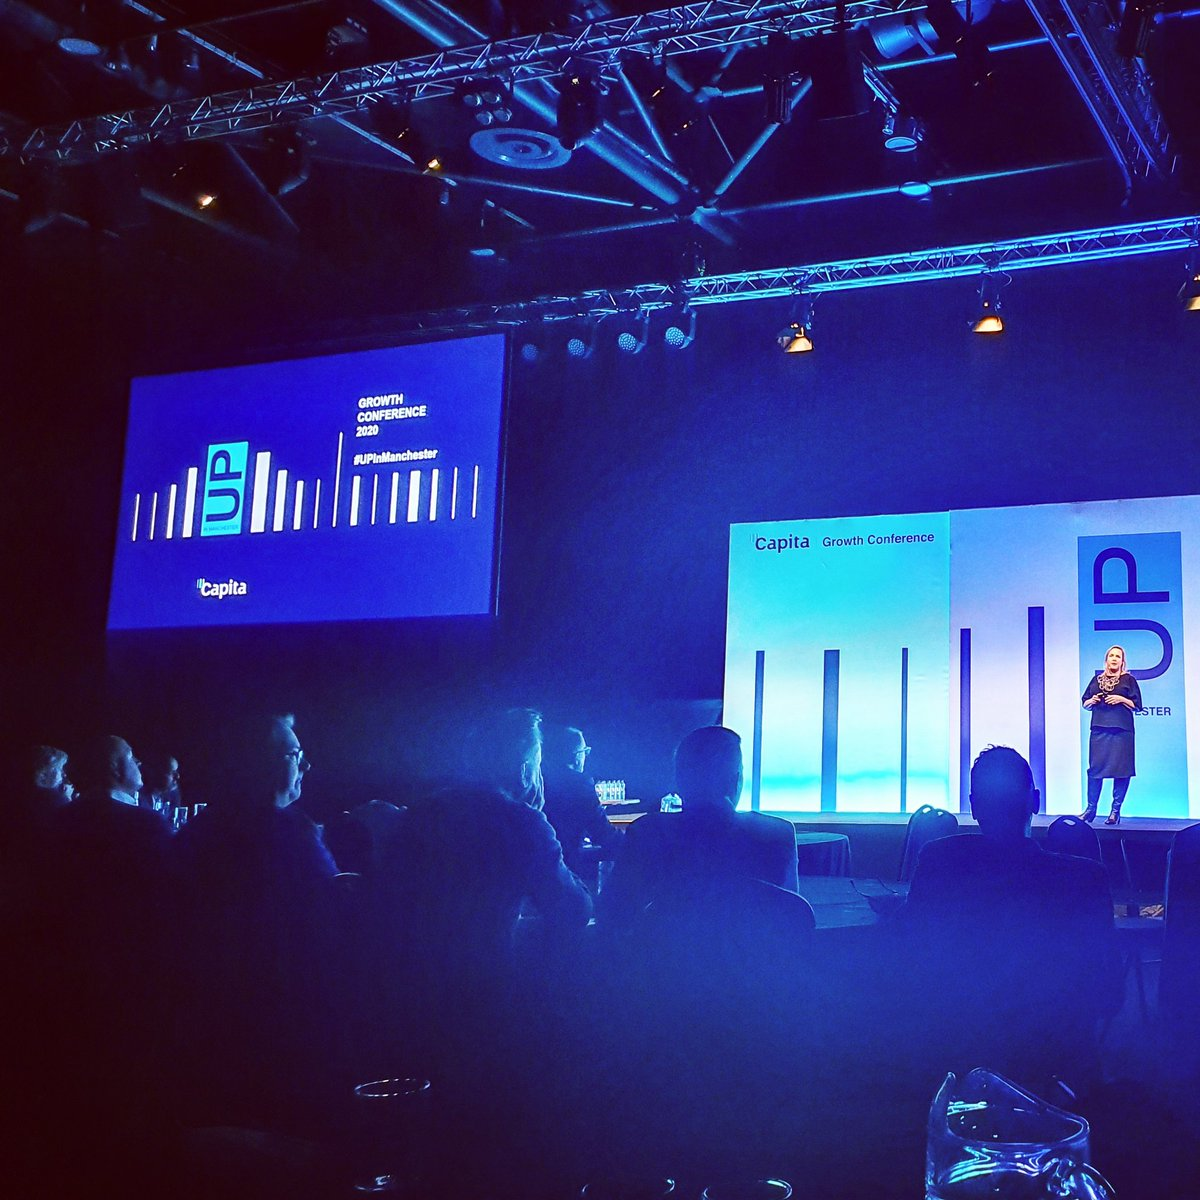 Great first day at Capita's 2020 Growth Conference #UPinManchester #future #technologysolutions pic.twitter.com/rv6zjd9SBn